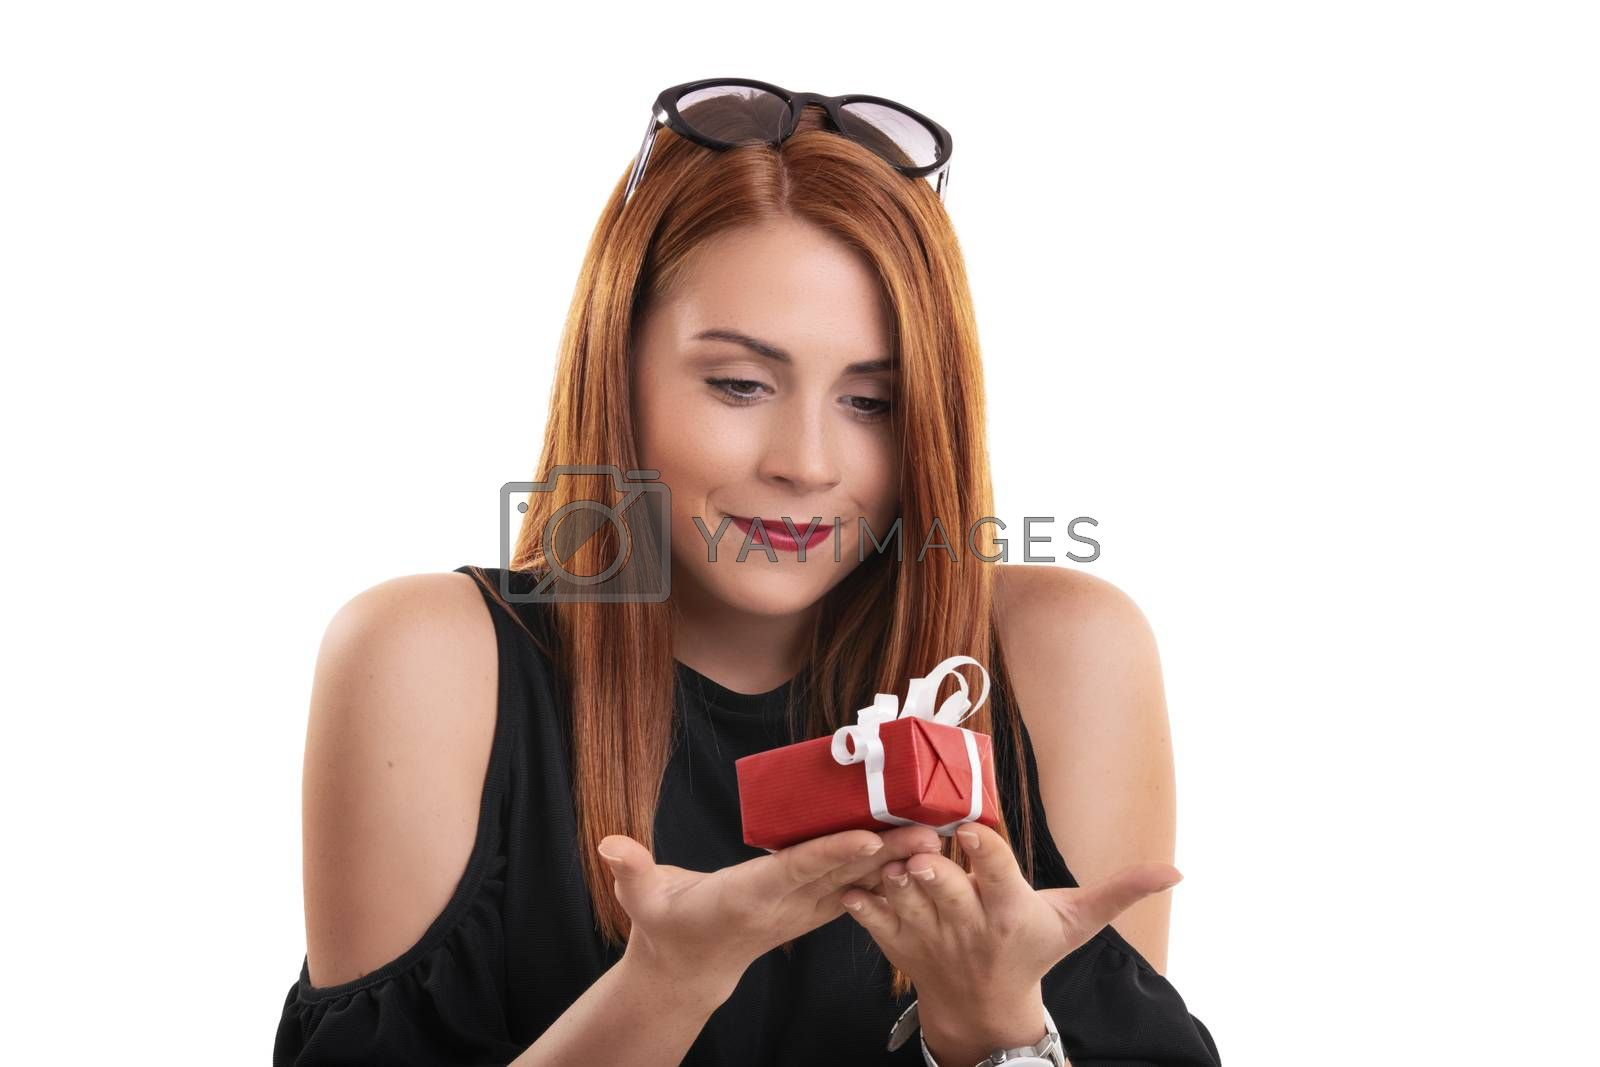 Smiling girl holding a small wrapped gift box by Mendelex